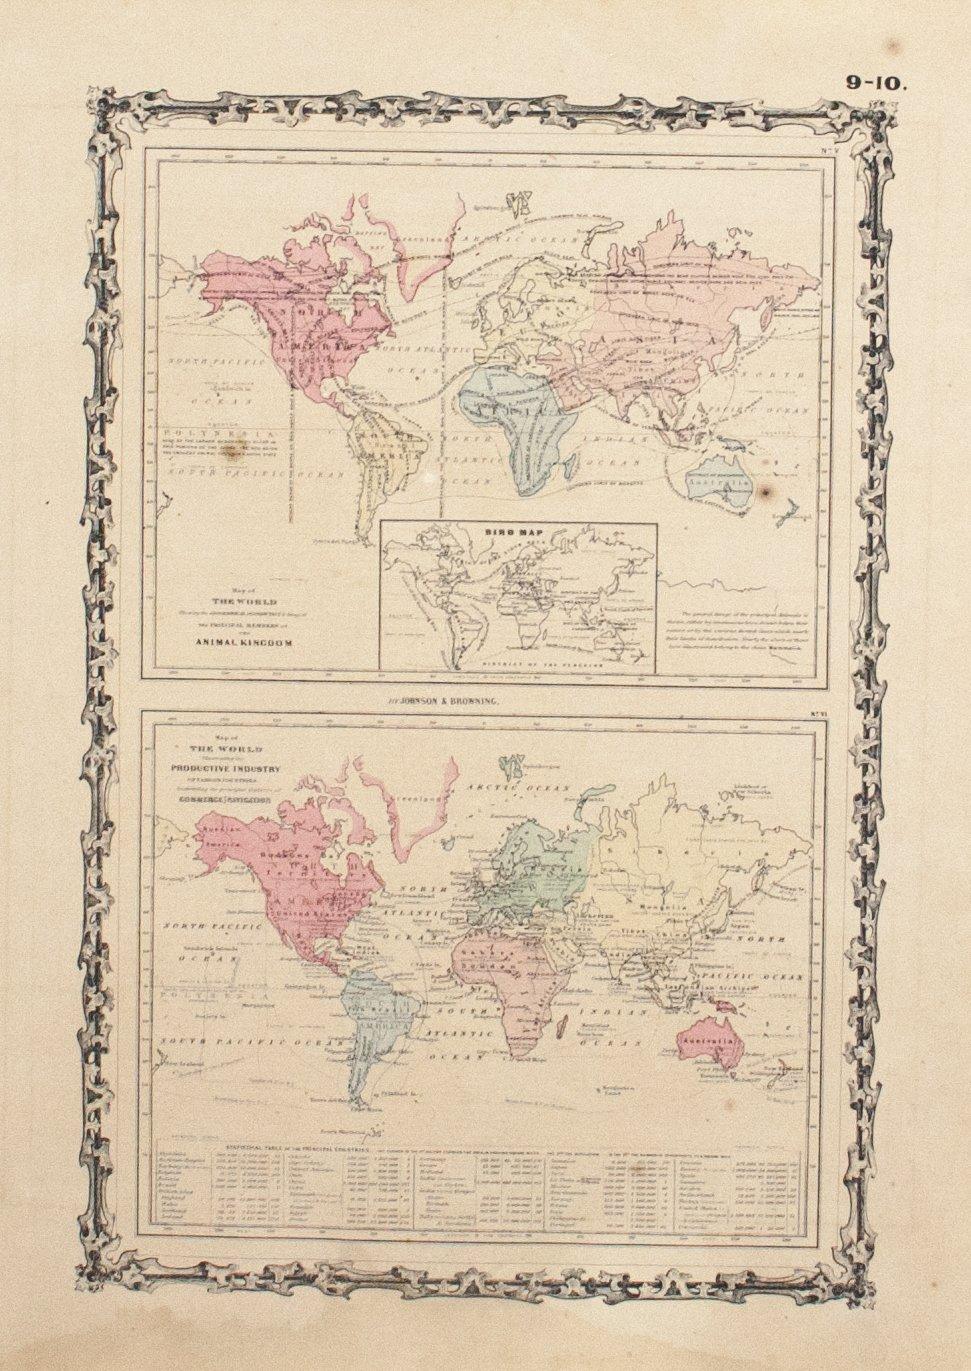 1860 Map of the World Productive Industry - Johnson